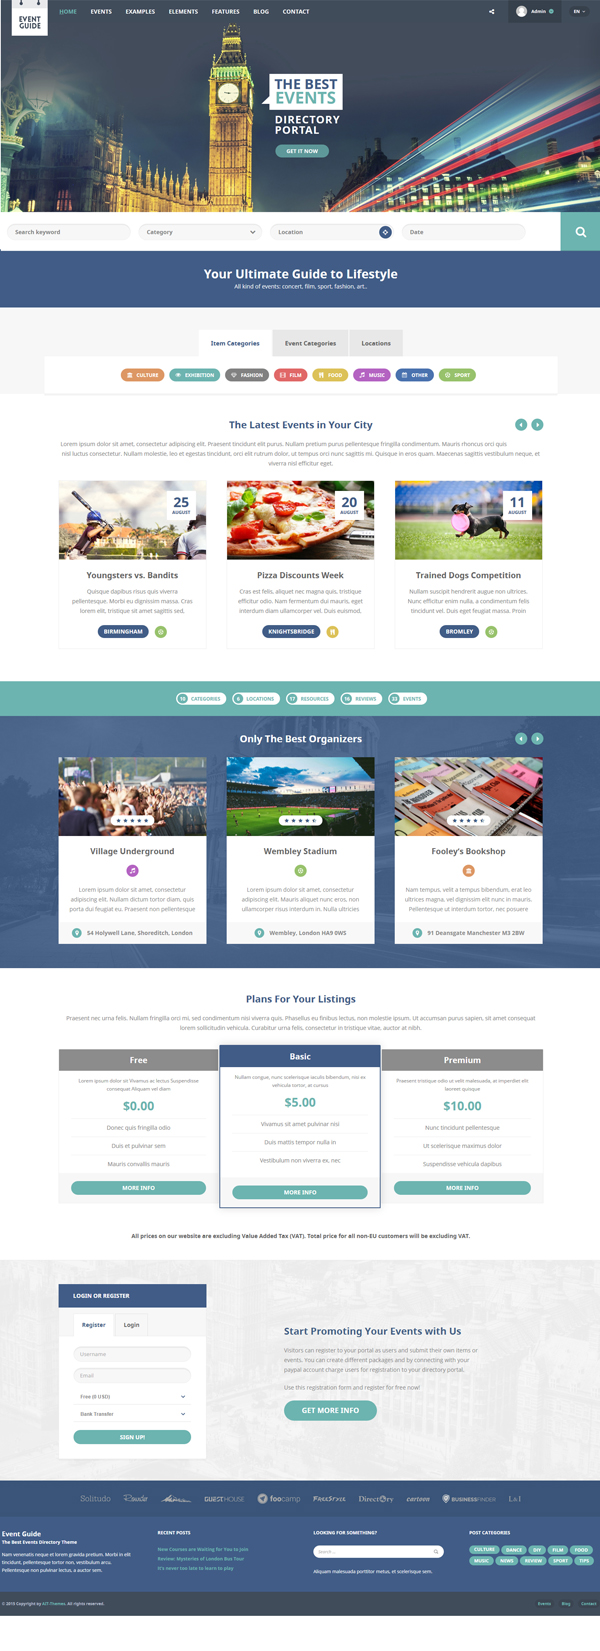 Event Guide - Ultimate Directory Listing Theme for Events, Concerts, Gigs, Museums or Galleries